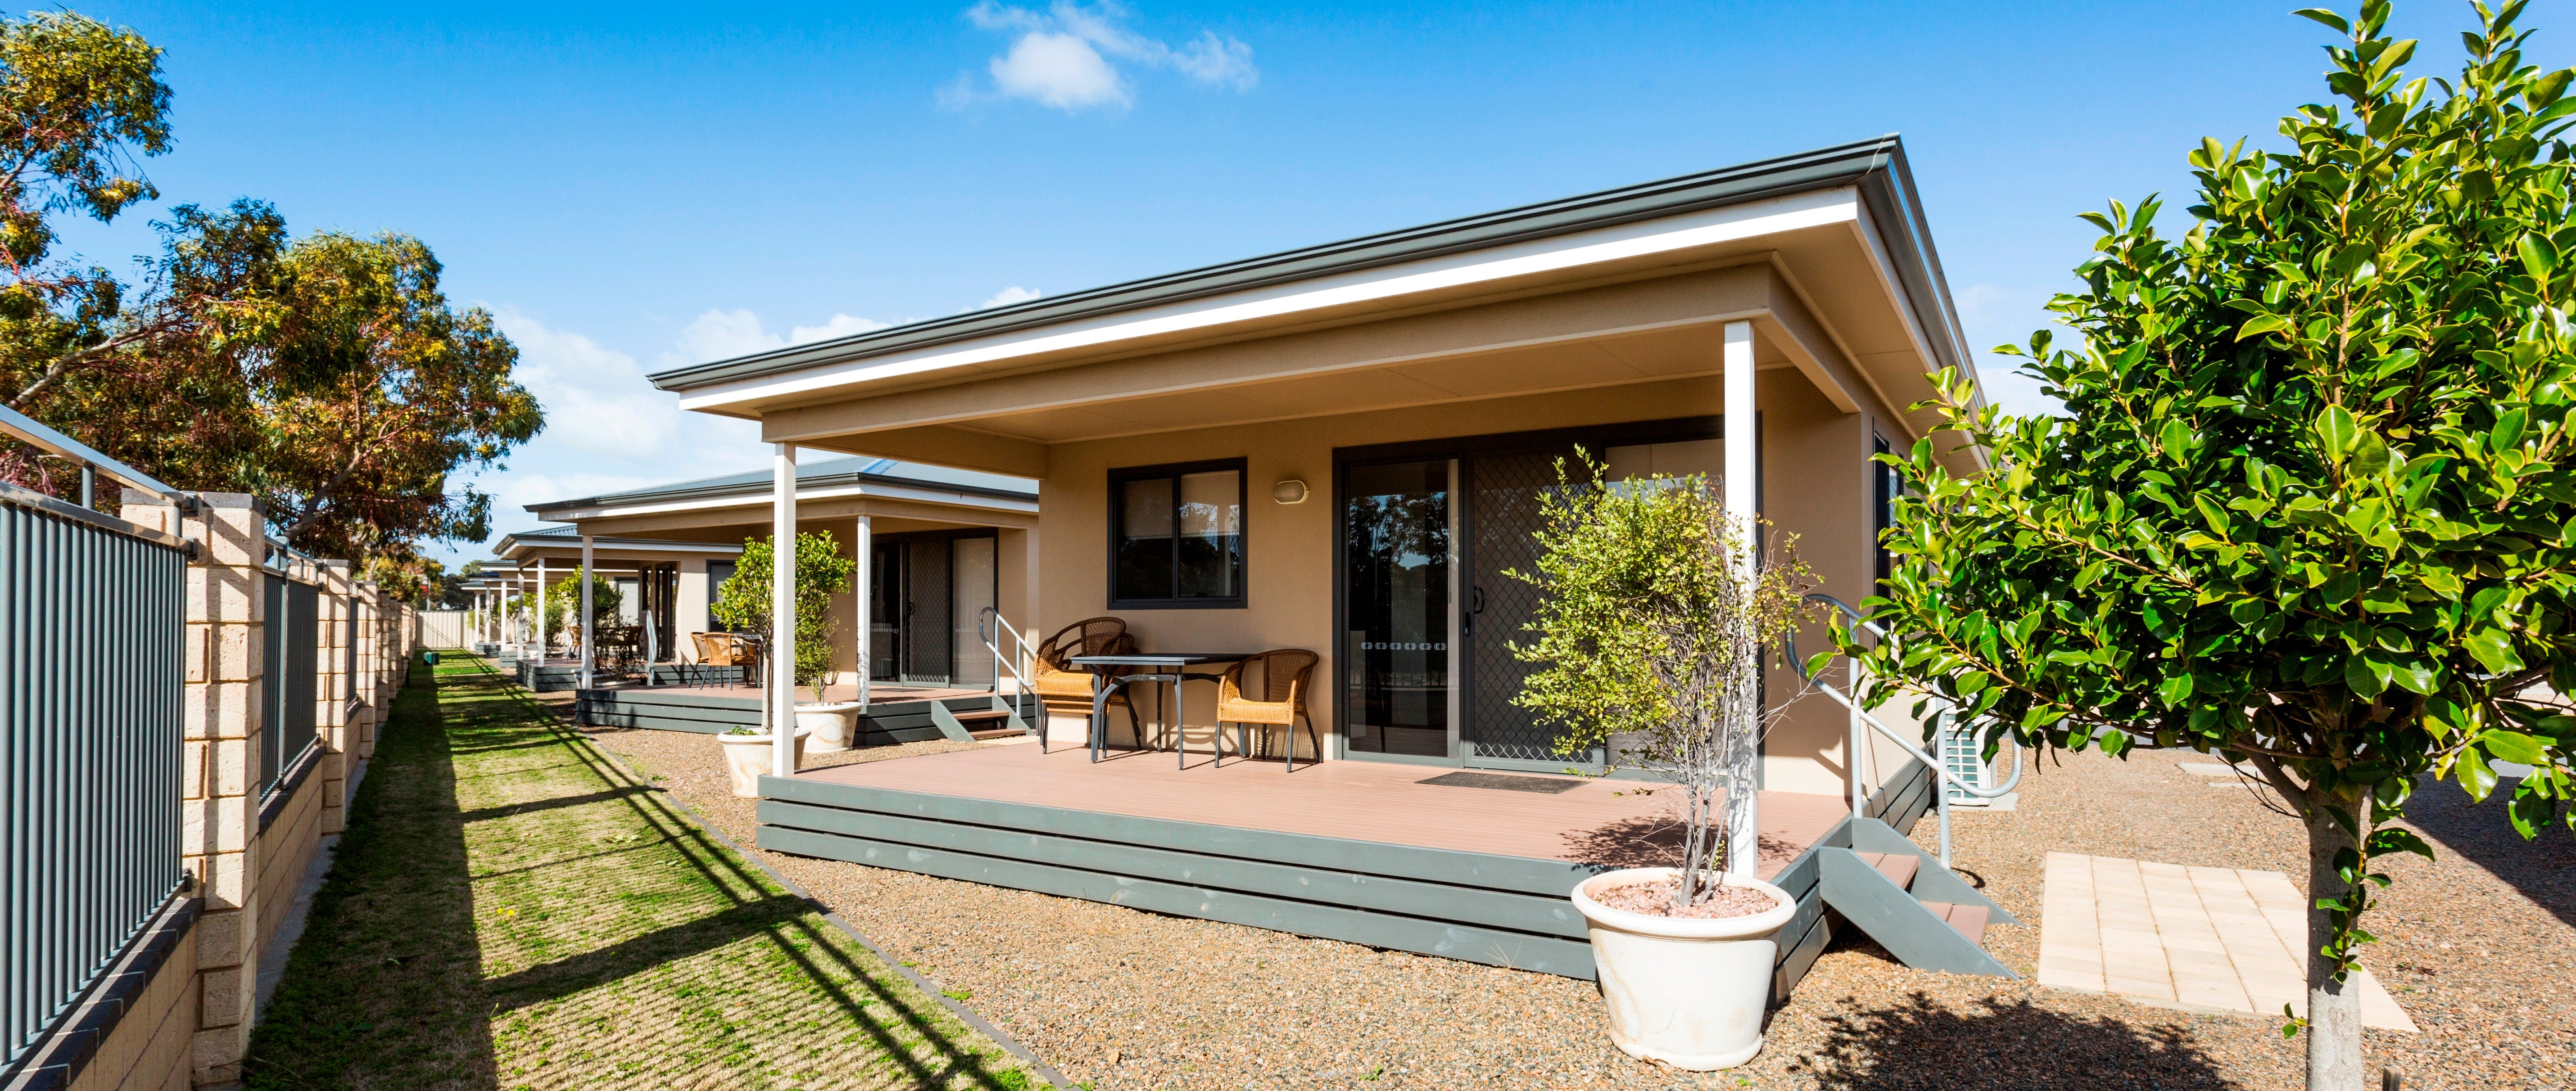 Tumby Villas - Accommodation Melbourne